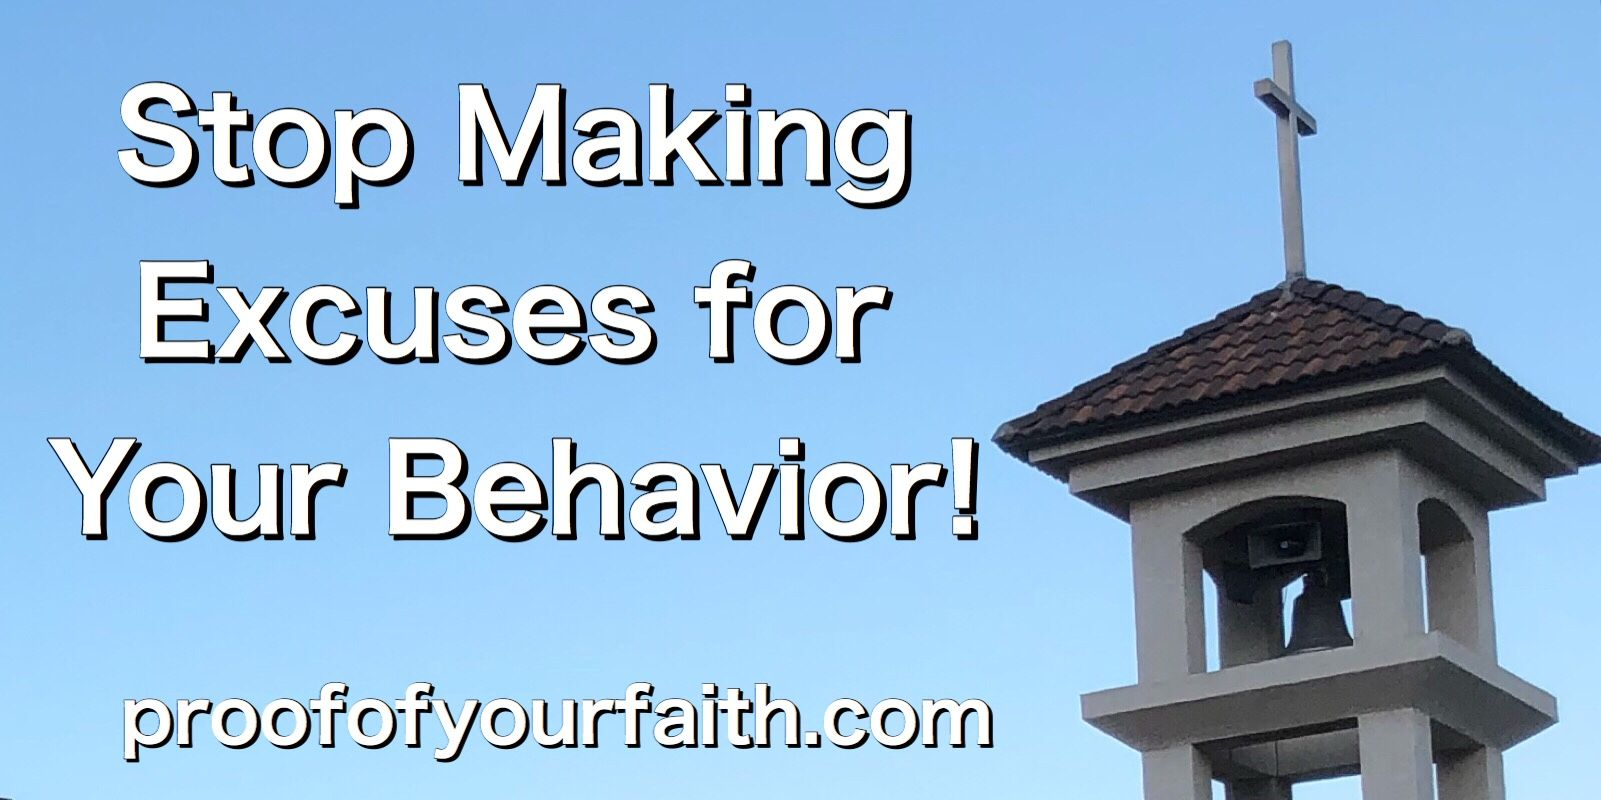 Stop Making Excuses For Your Behavior